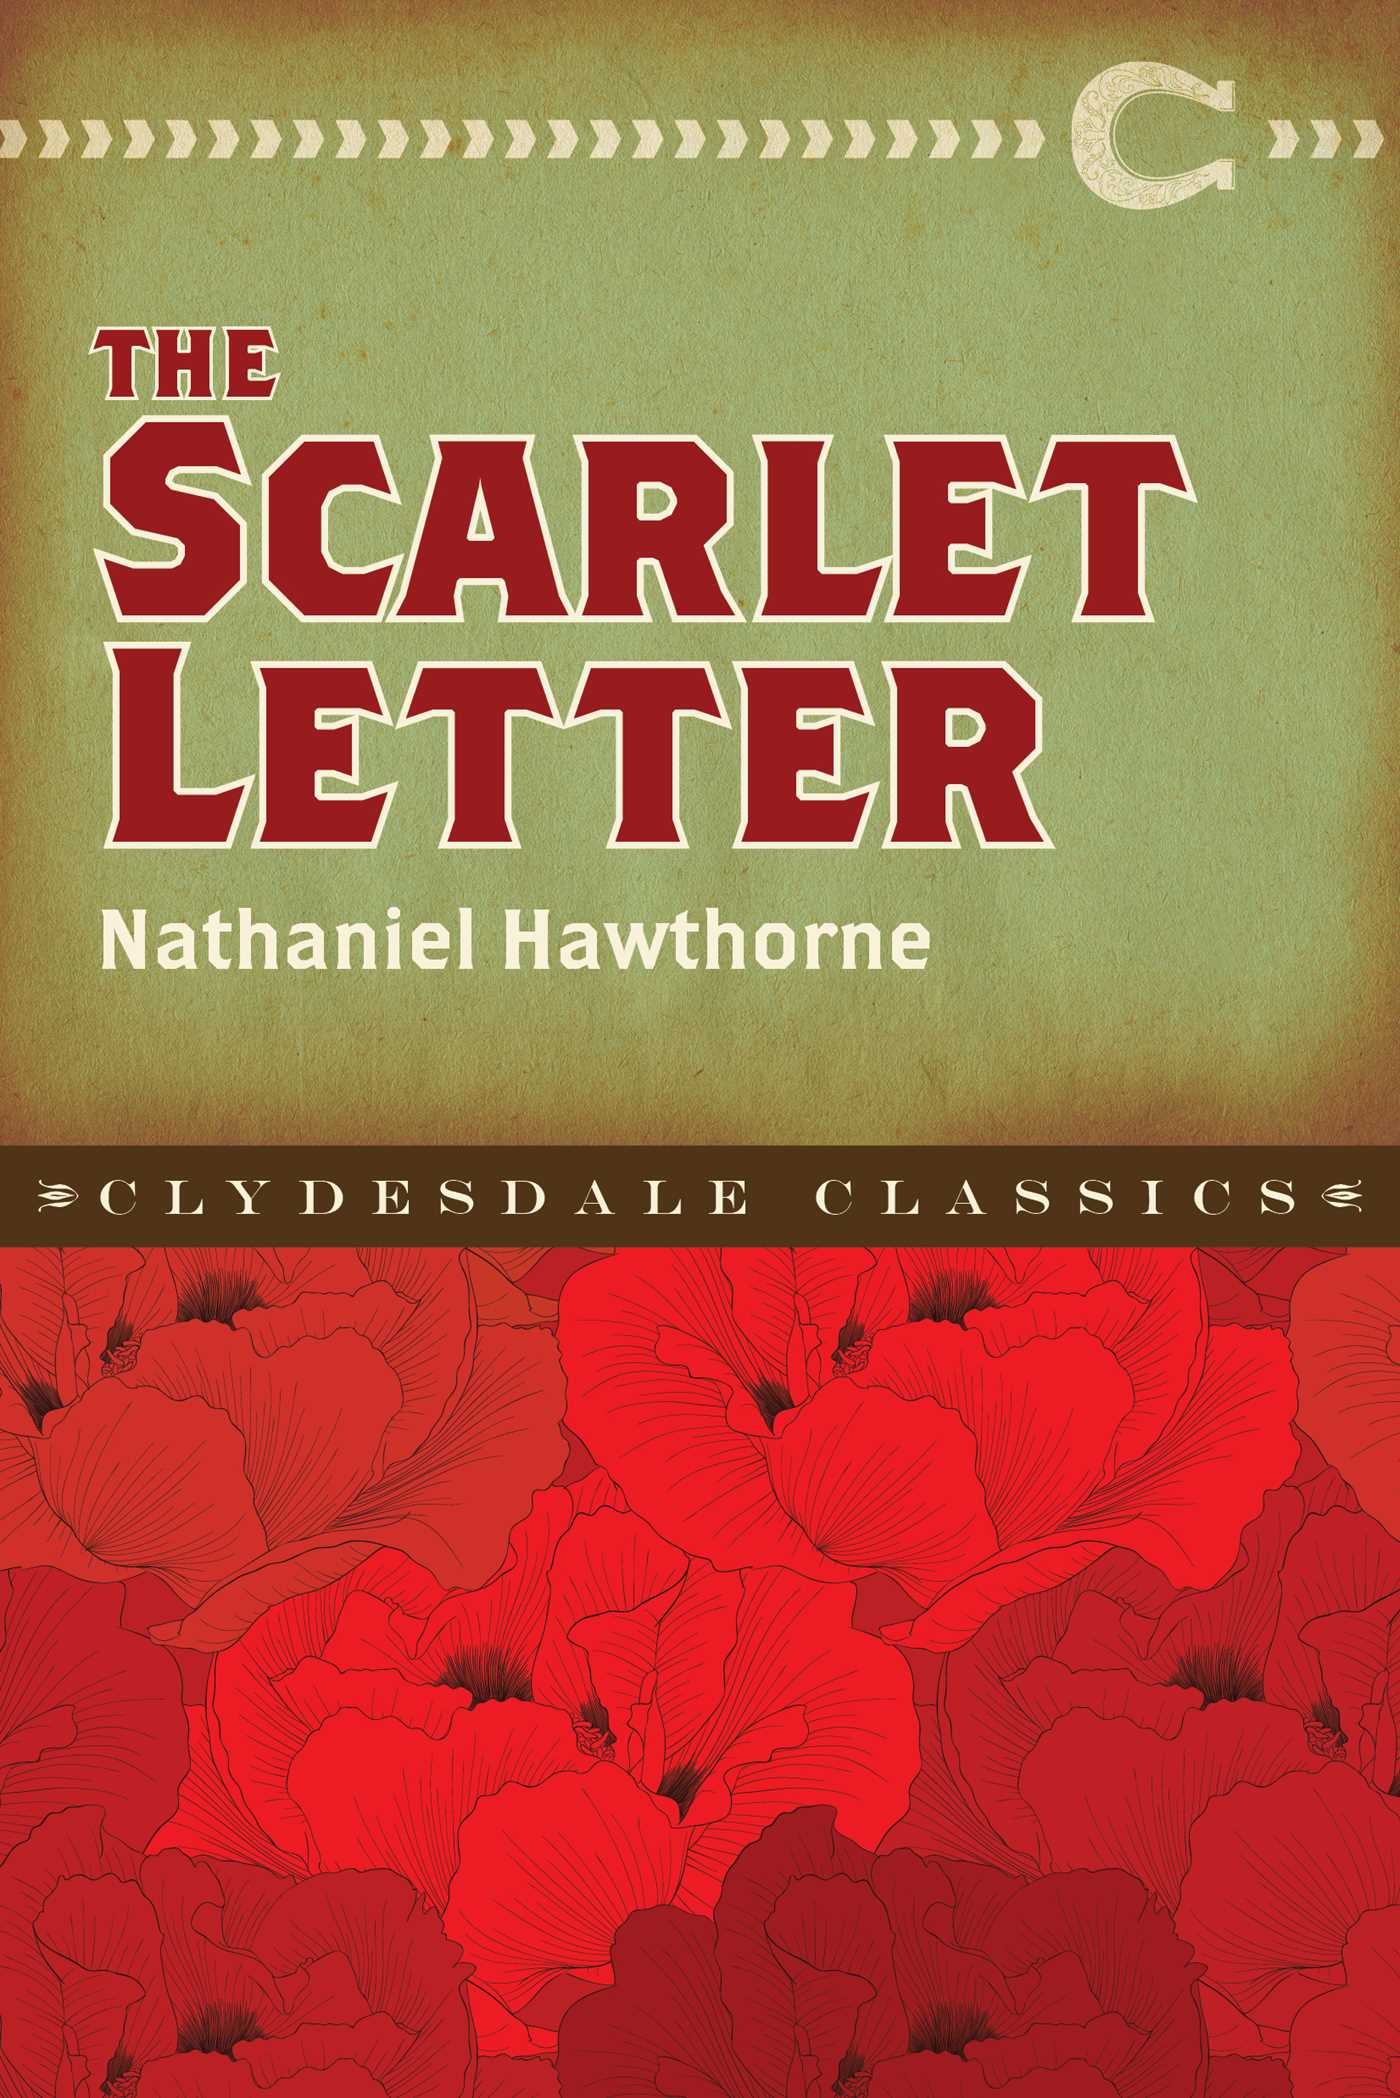 Book Cover Image Jpg The Scarlet Letter